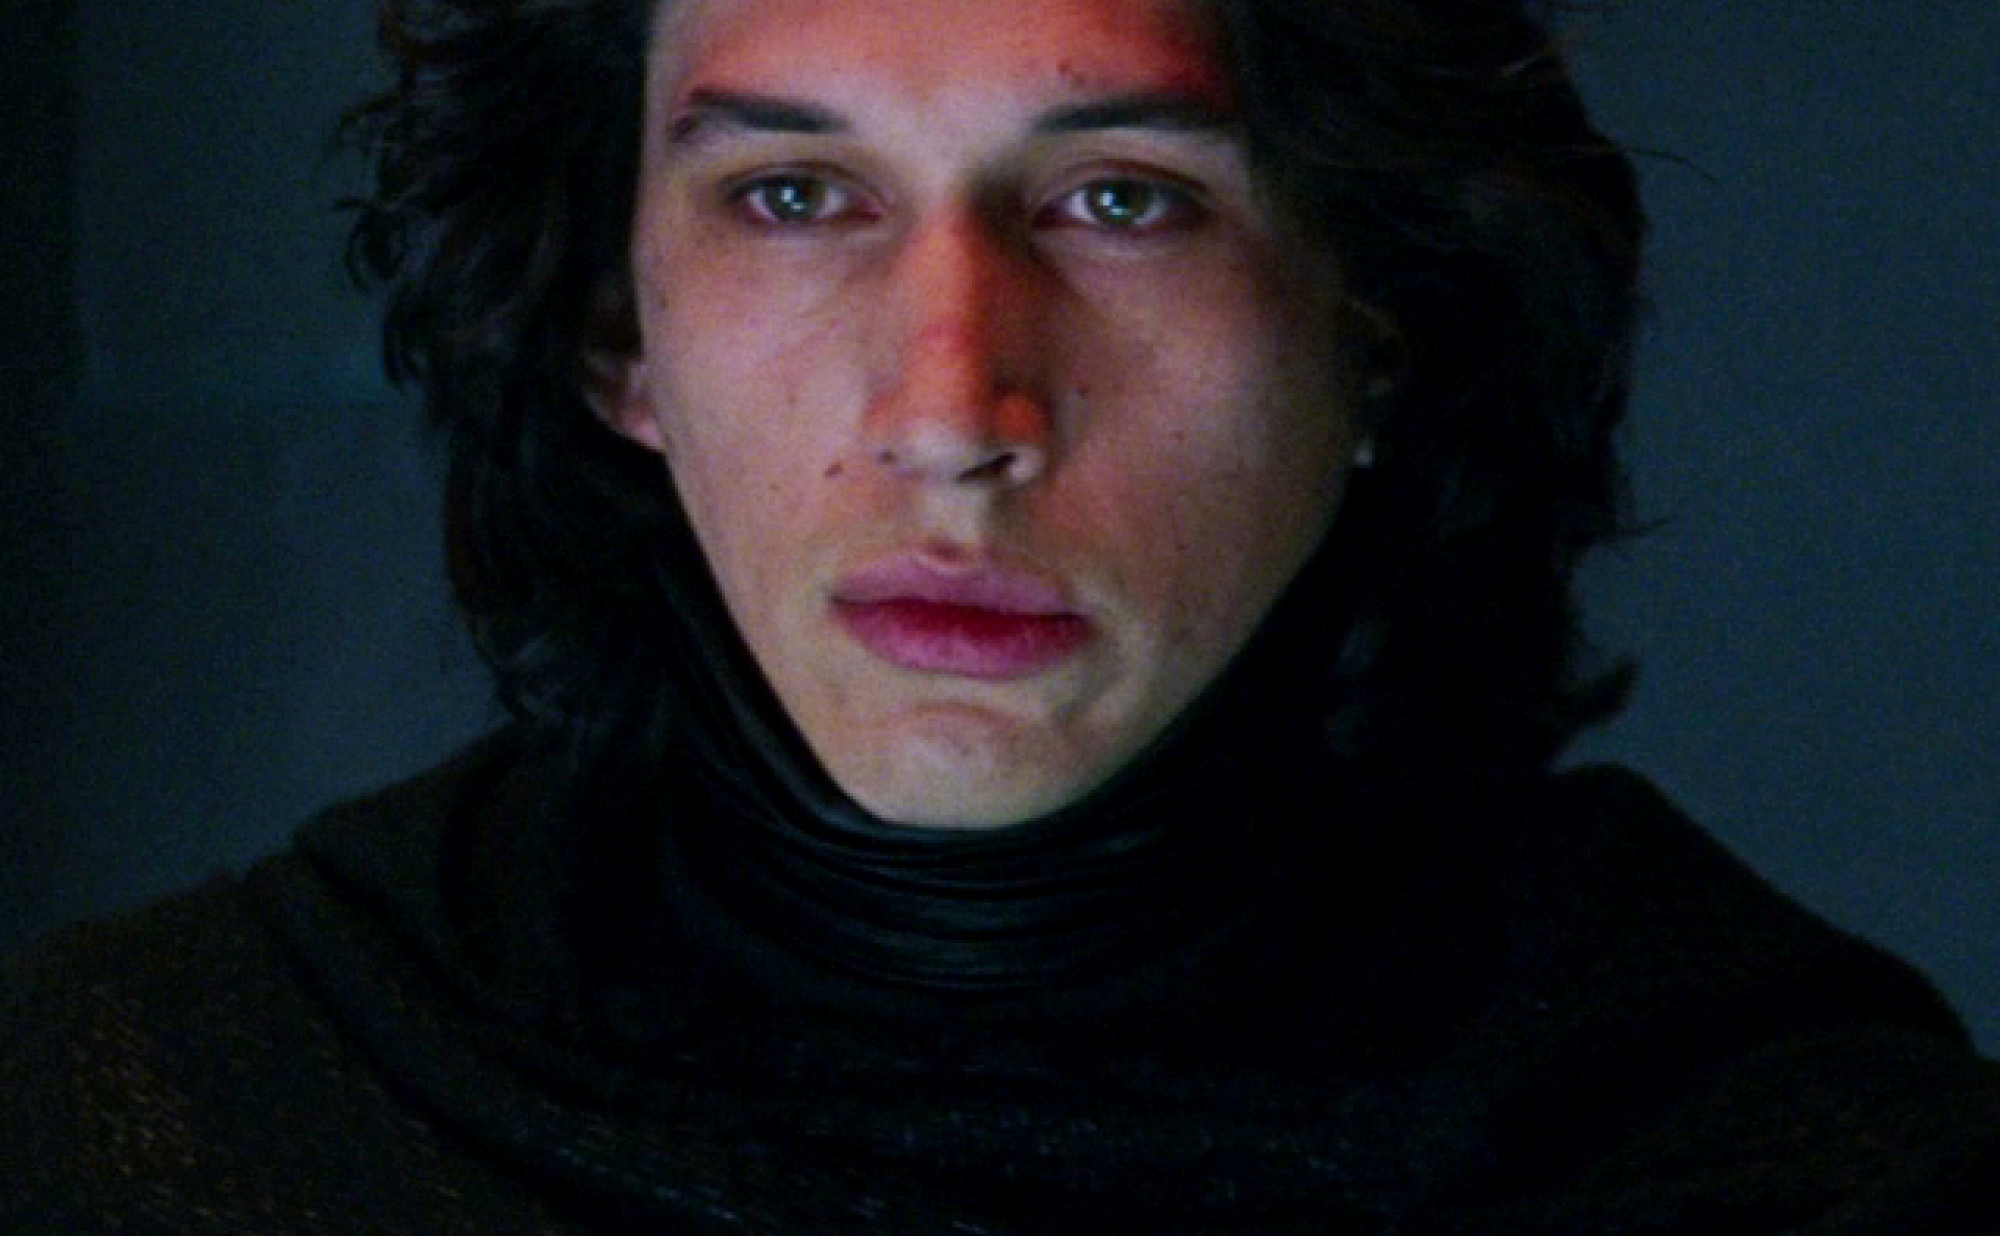 Kylo Ren is Adam Driver